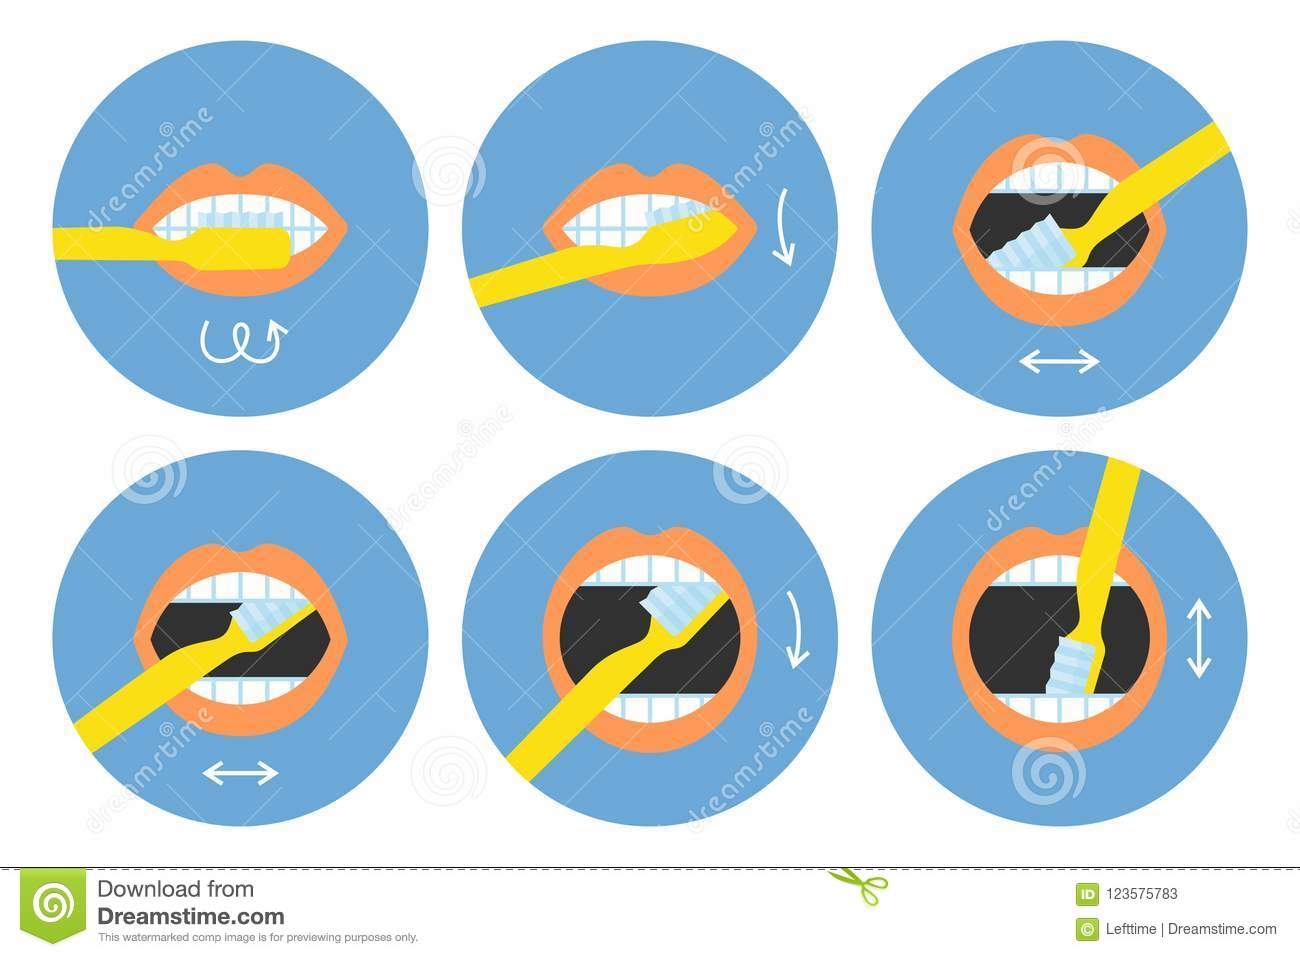 How To Brush Your Teeth Instructions 6 Steps Stock Vector